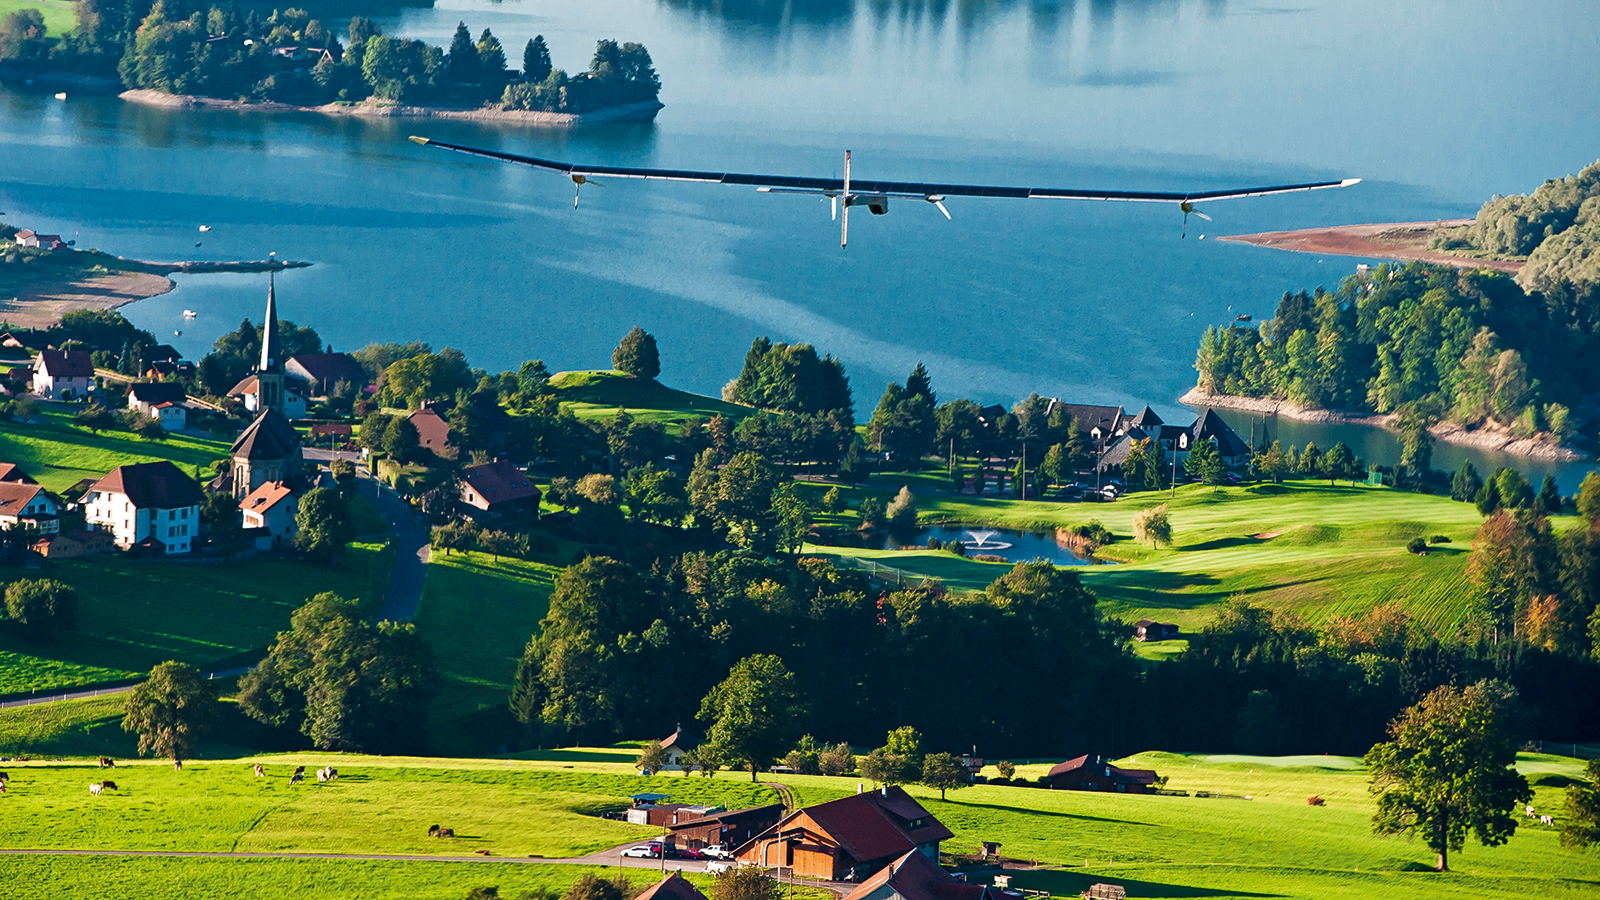 Solar impulse © Jean Revillard